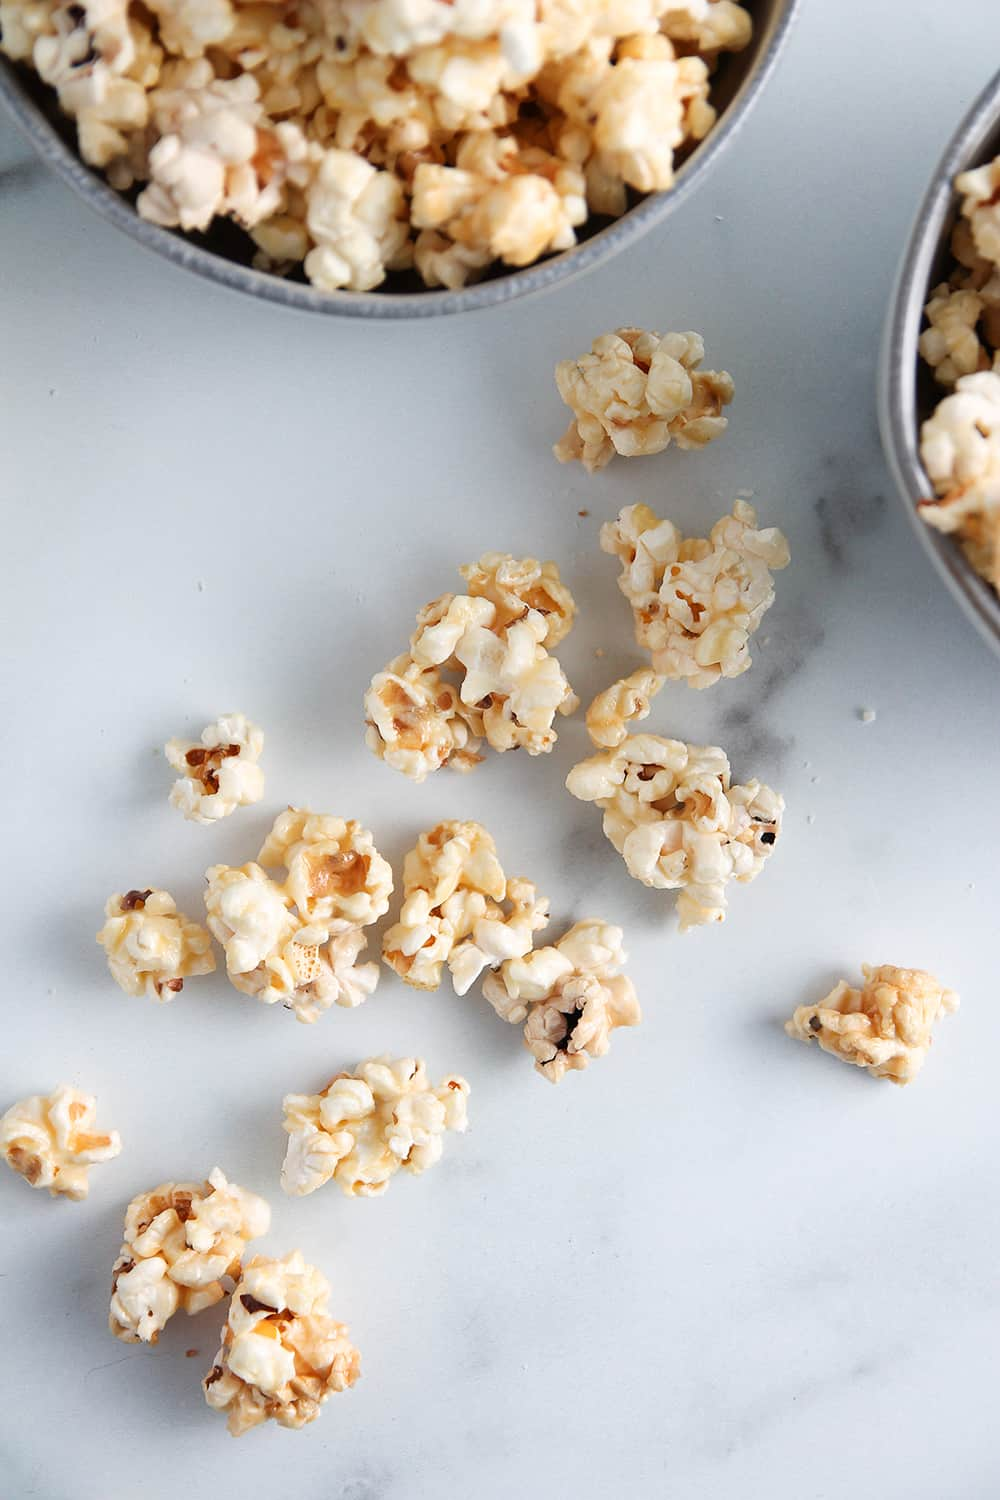 Pieces of microwave caramel corn scattered on a marble surface